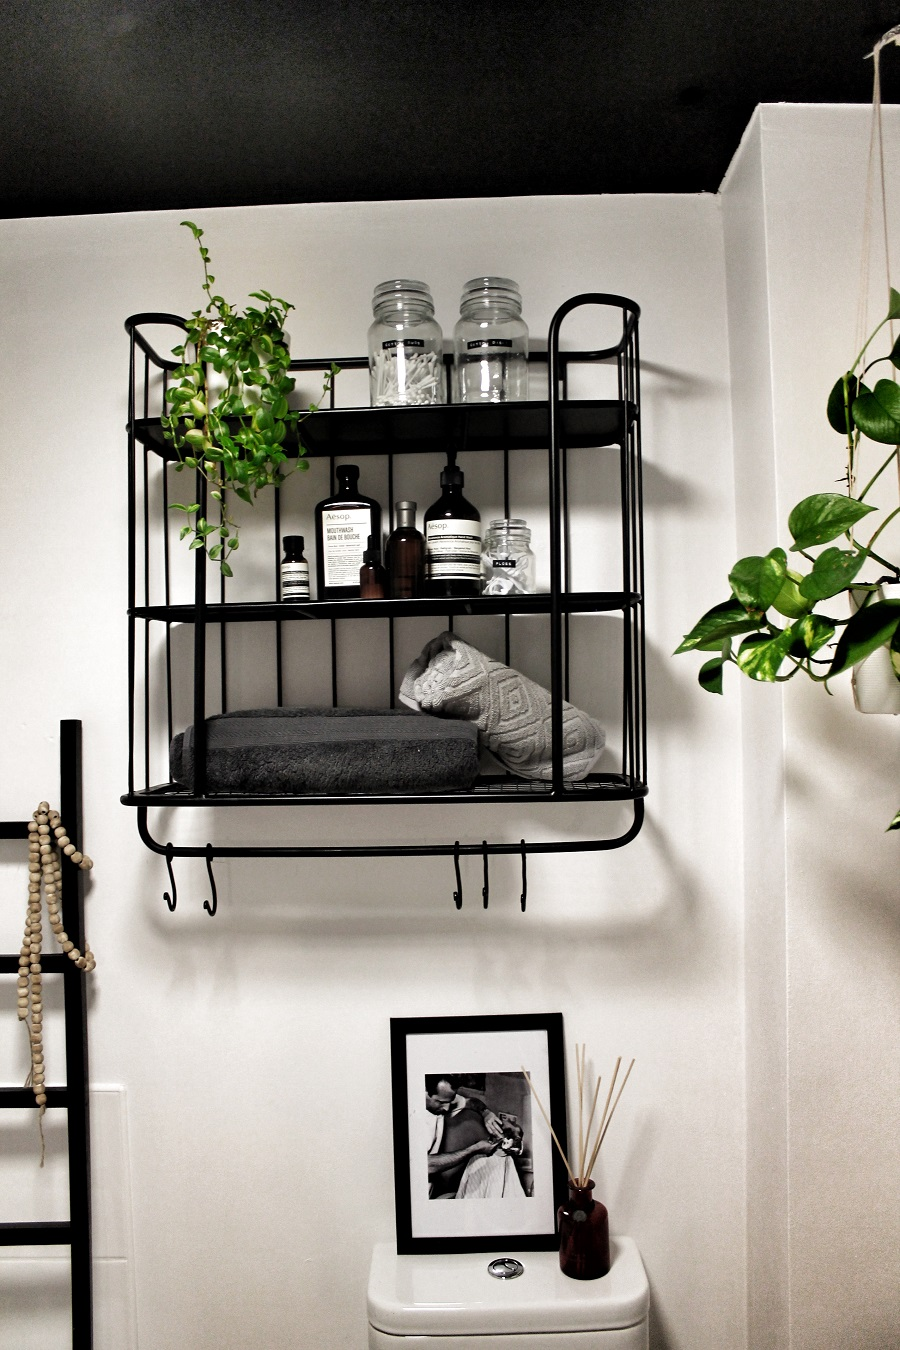 Nifty Wall Storage Ideas for Small Space Living - the bathroom